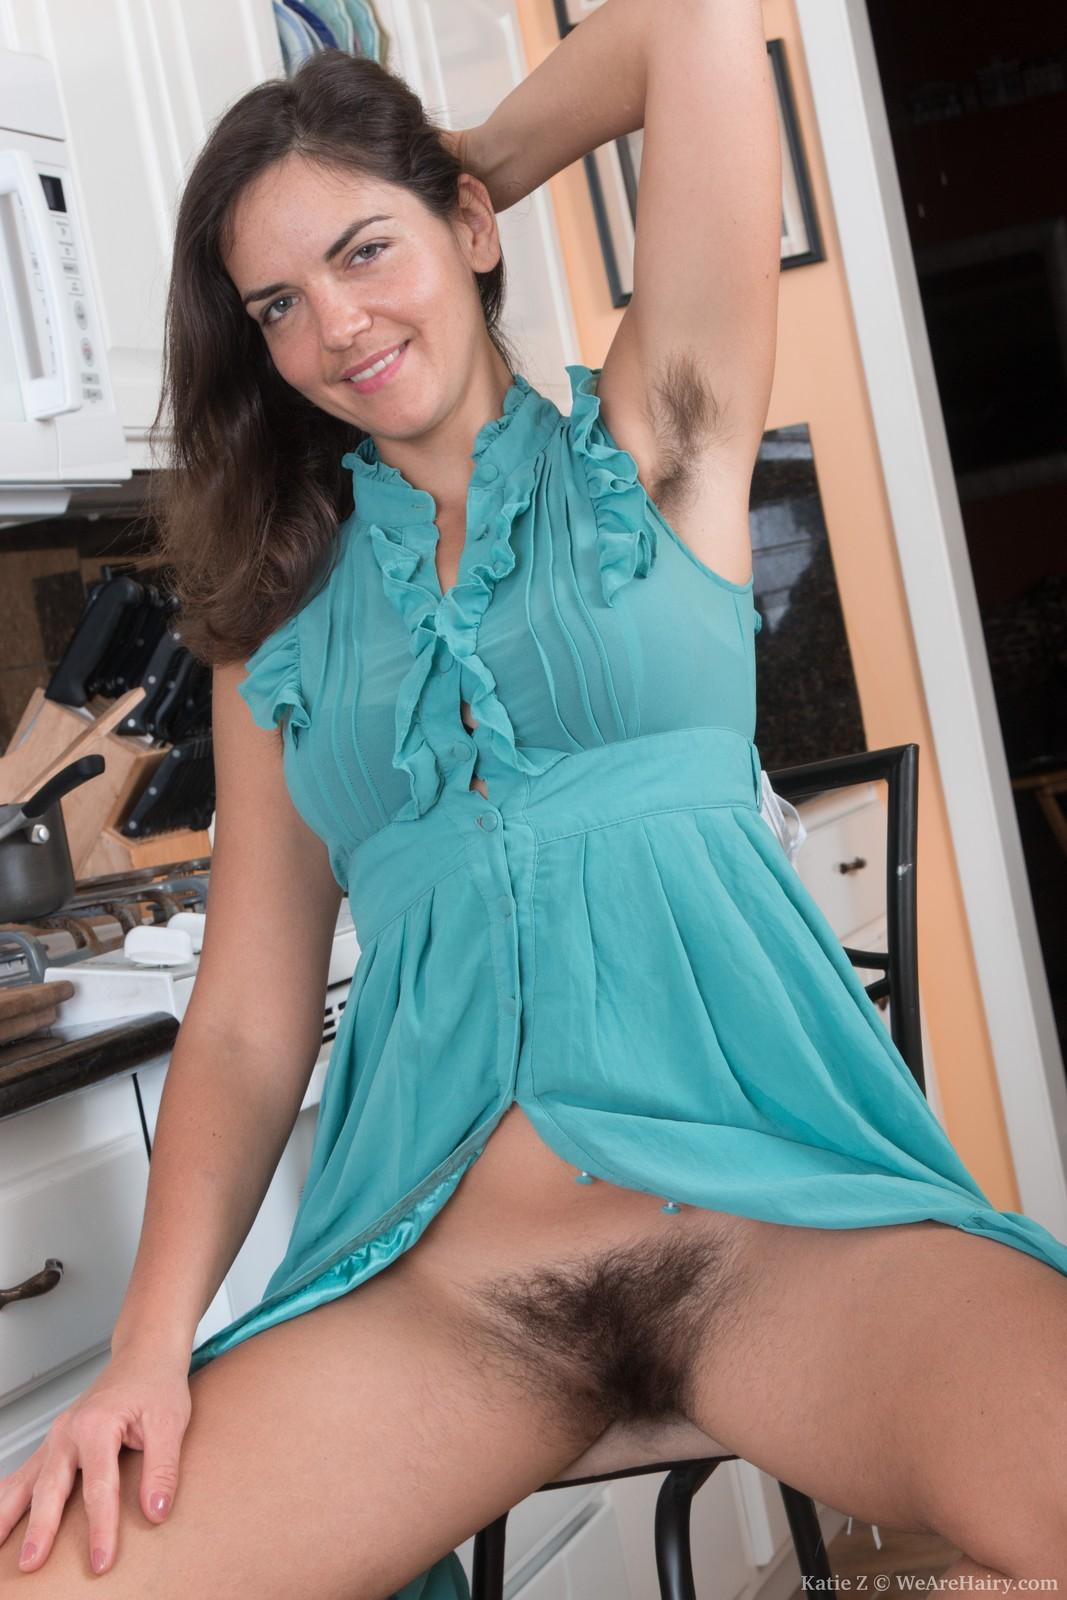 European first-timer Katie Z displaying hairy pits and all-natural pubic hair in kitchen